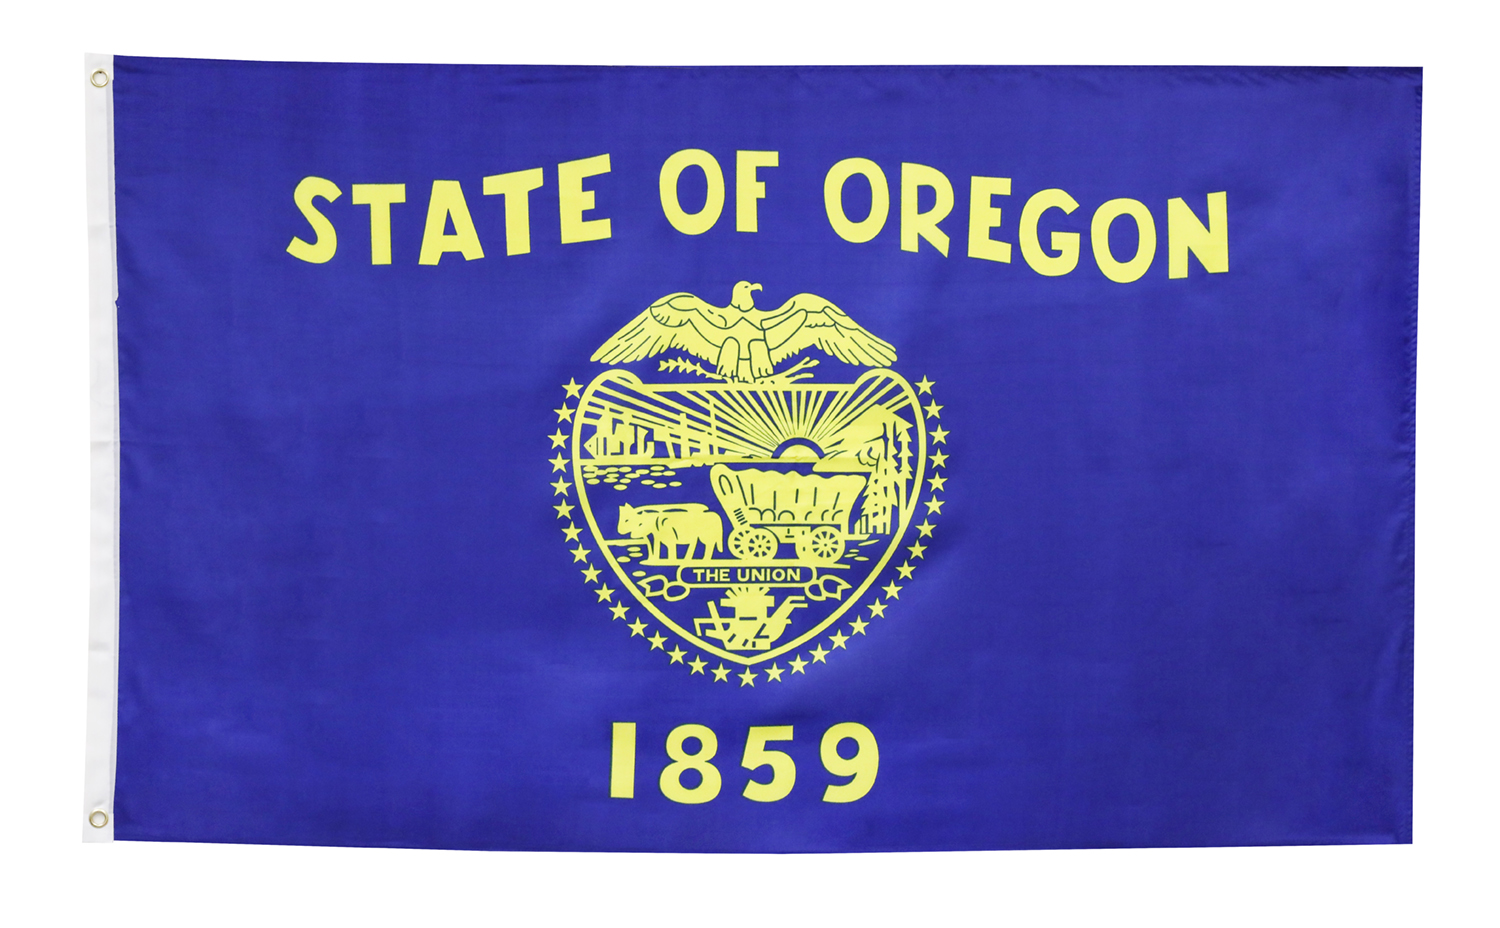 Shop72 US Oregon State Flags - Oregon Flag - 3x5' Flag from Sturdy 100D Polyester-Single Sided - Canvas Header Brass Grommets Double Stitched from Win